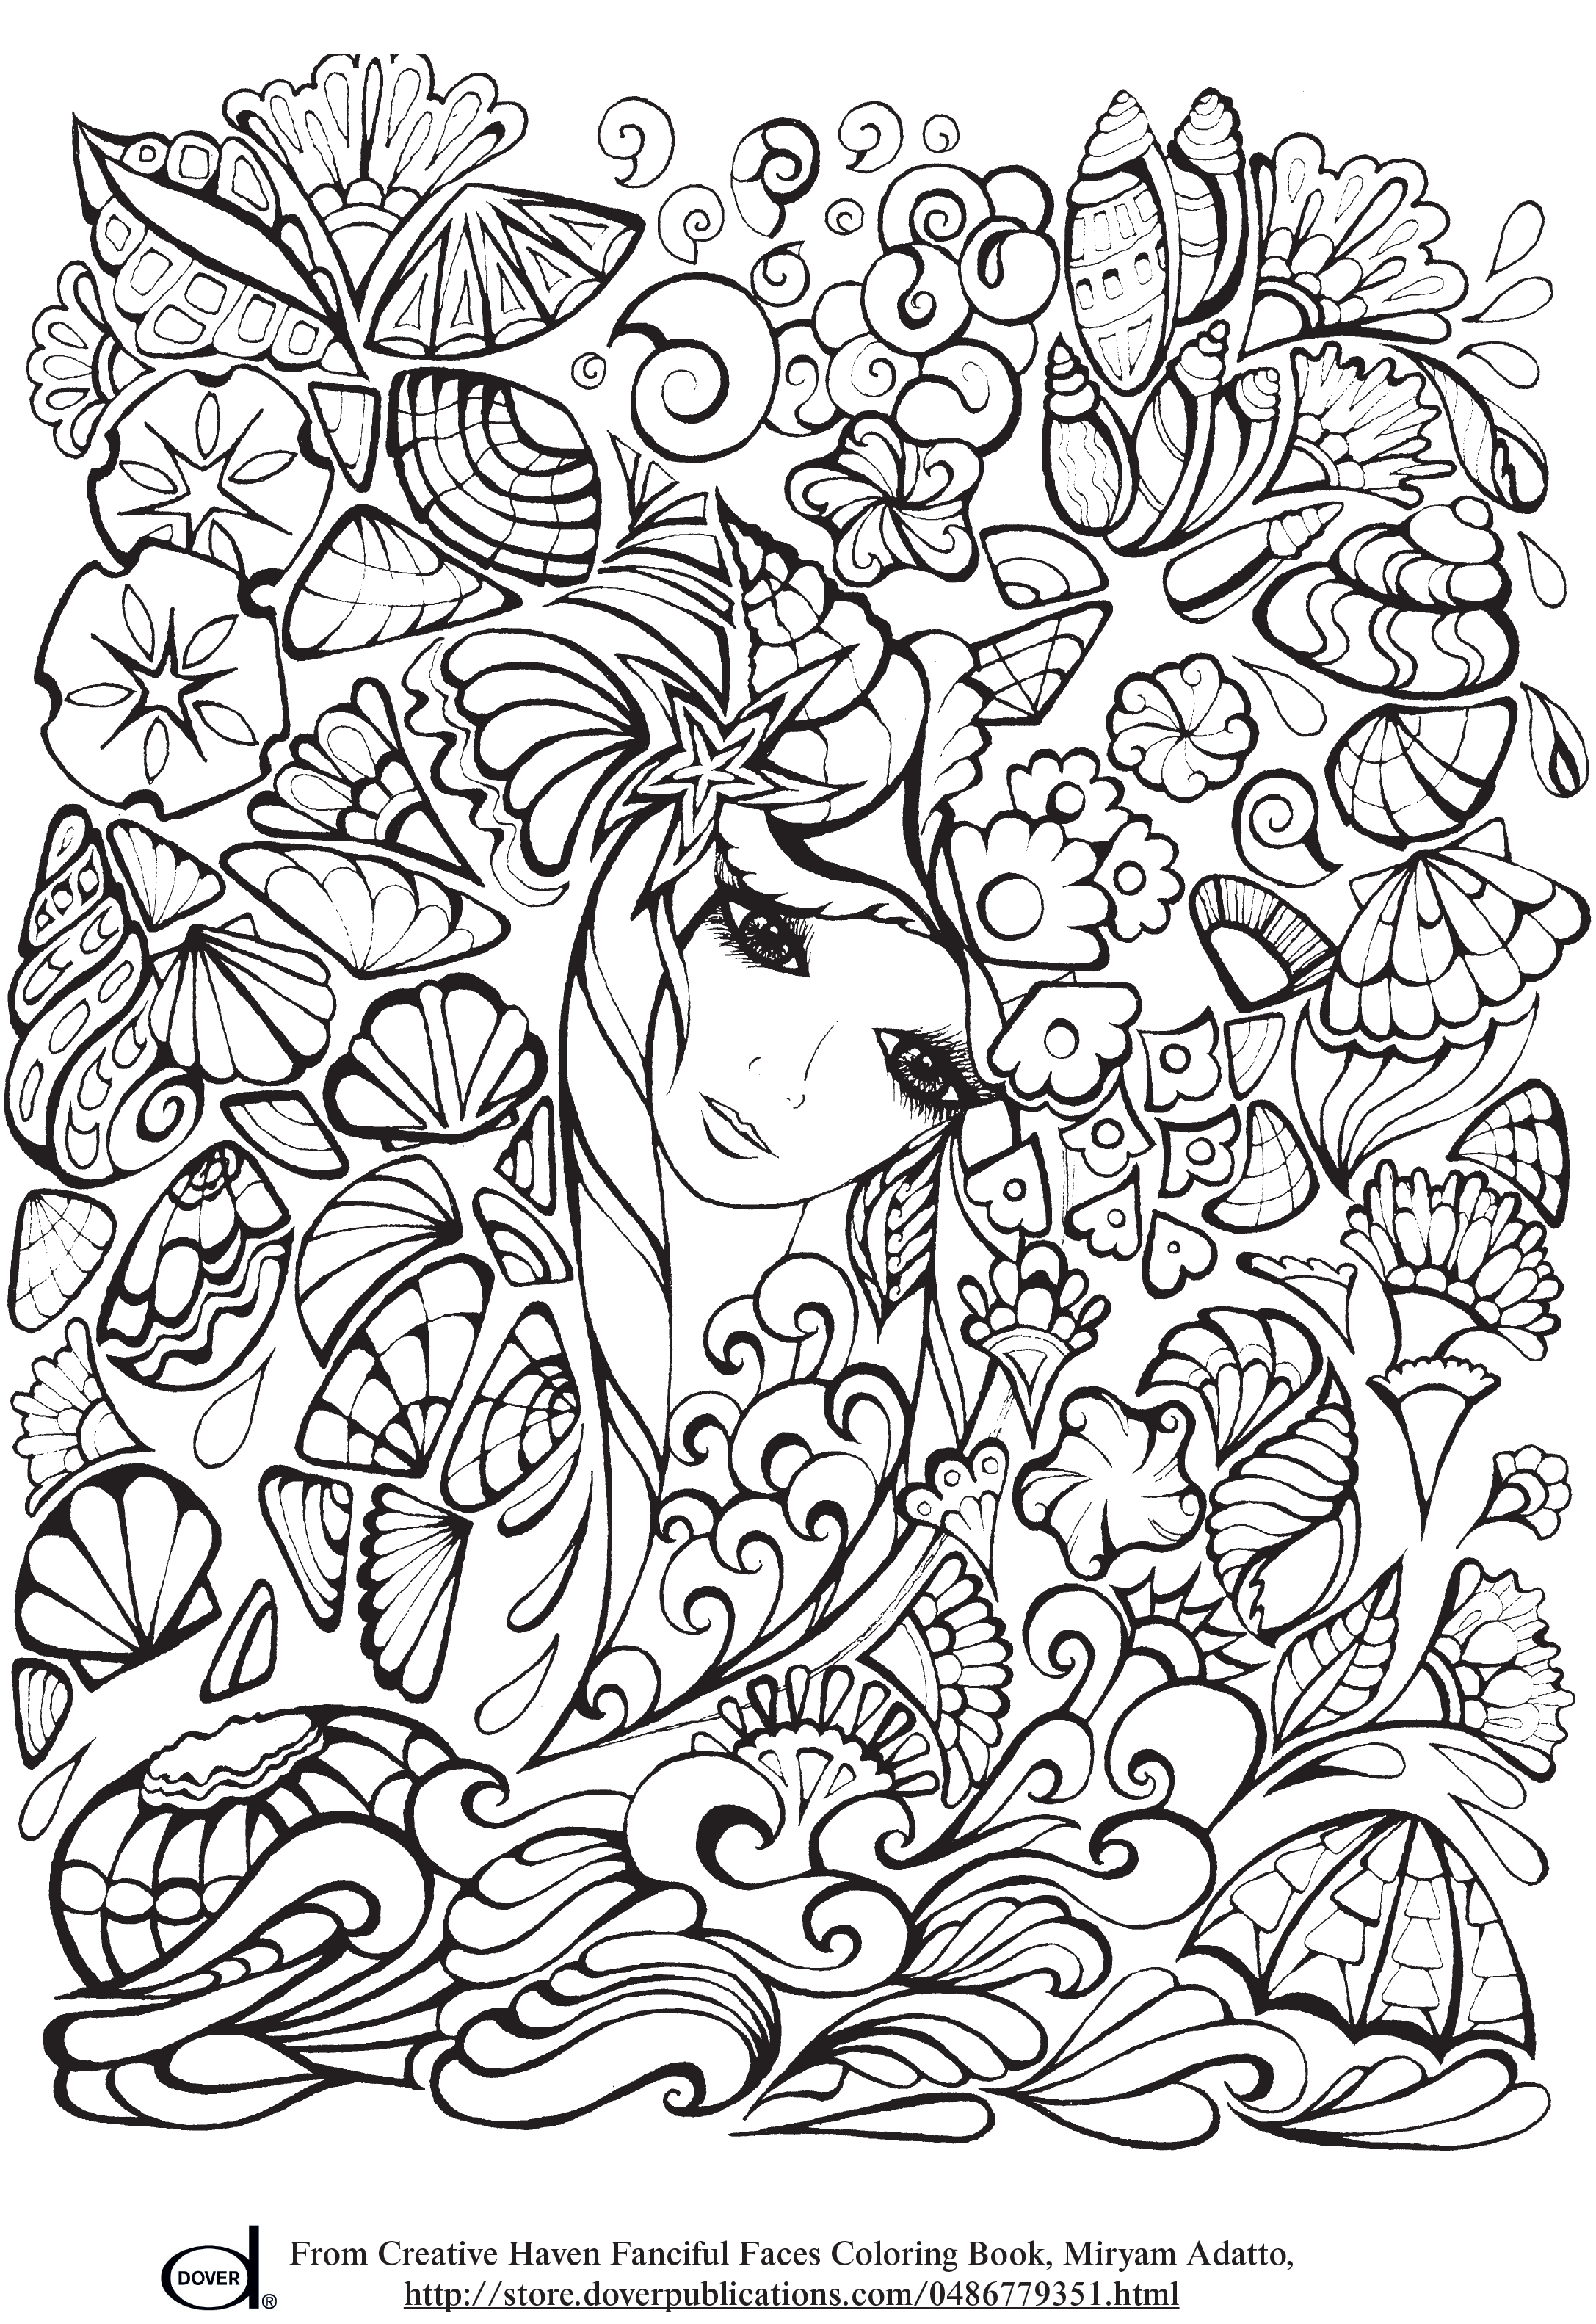 Free Printable Adult Coloring Pages - Anime - Girl with Flowers ...